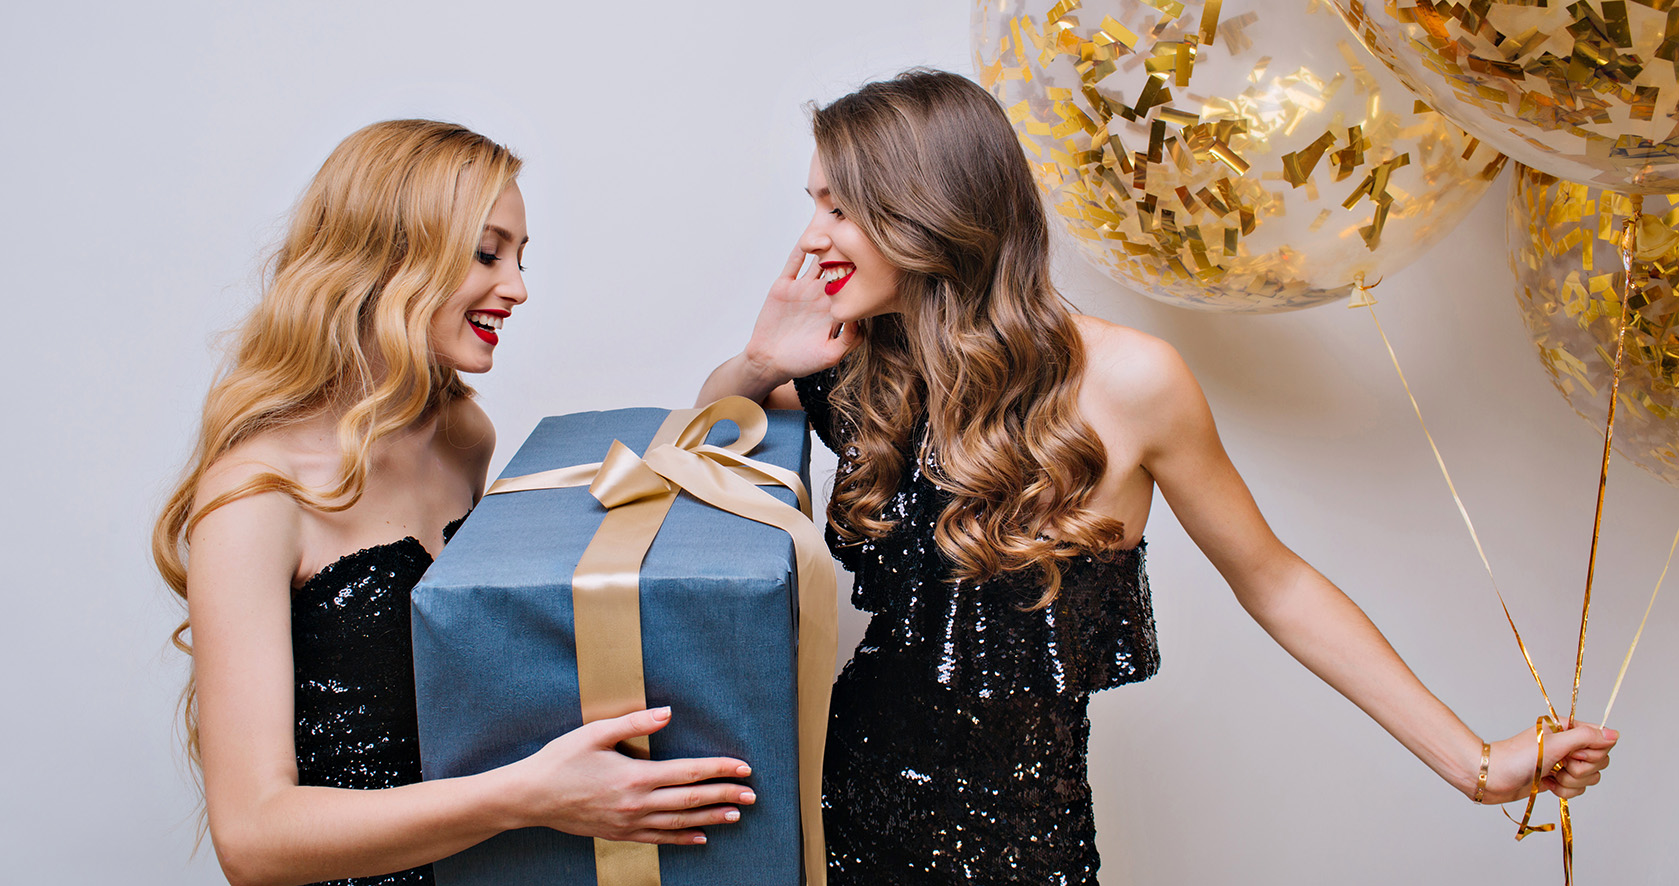 Amazing blonde girl received big present from female friend with light-brown hair. Indoor portrait of charming young woman holding gift for brunette sister which holding party balloons..